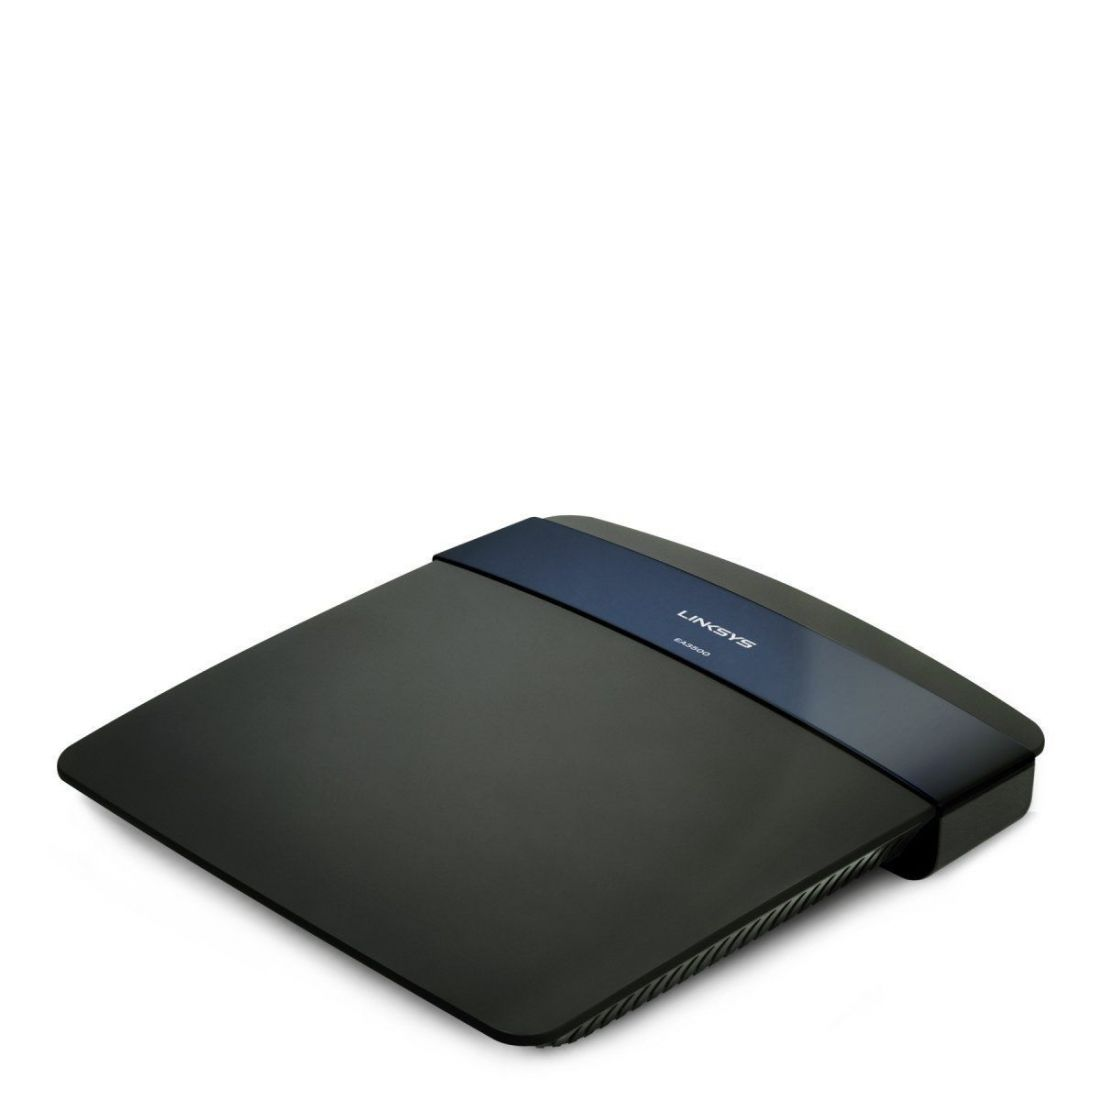 Wi-Fi Маршрутизатор Linksys EA3500